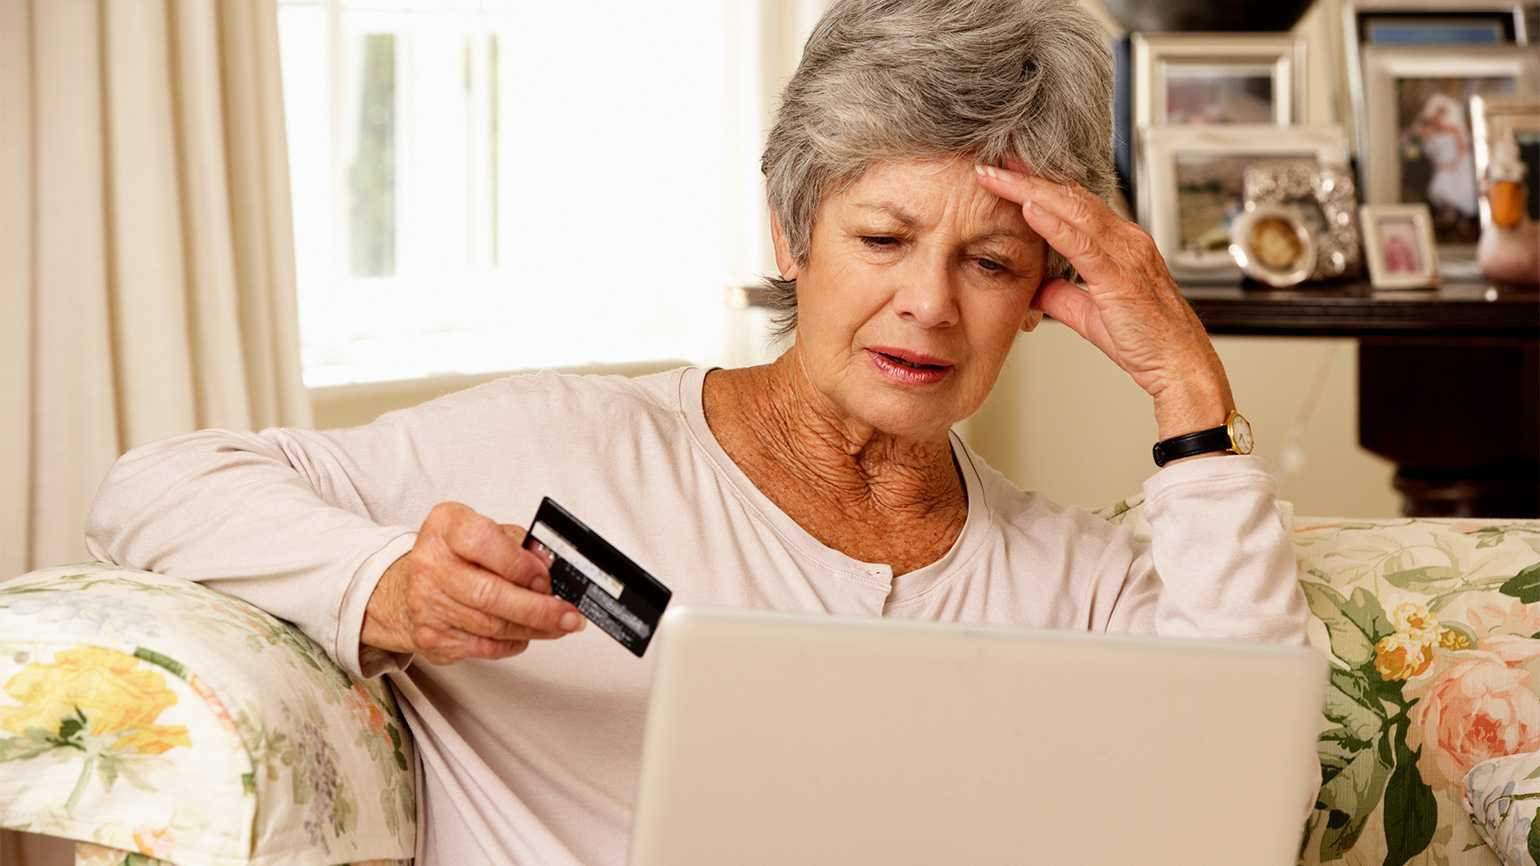 A senior looks with concern at a credit report on her laptop